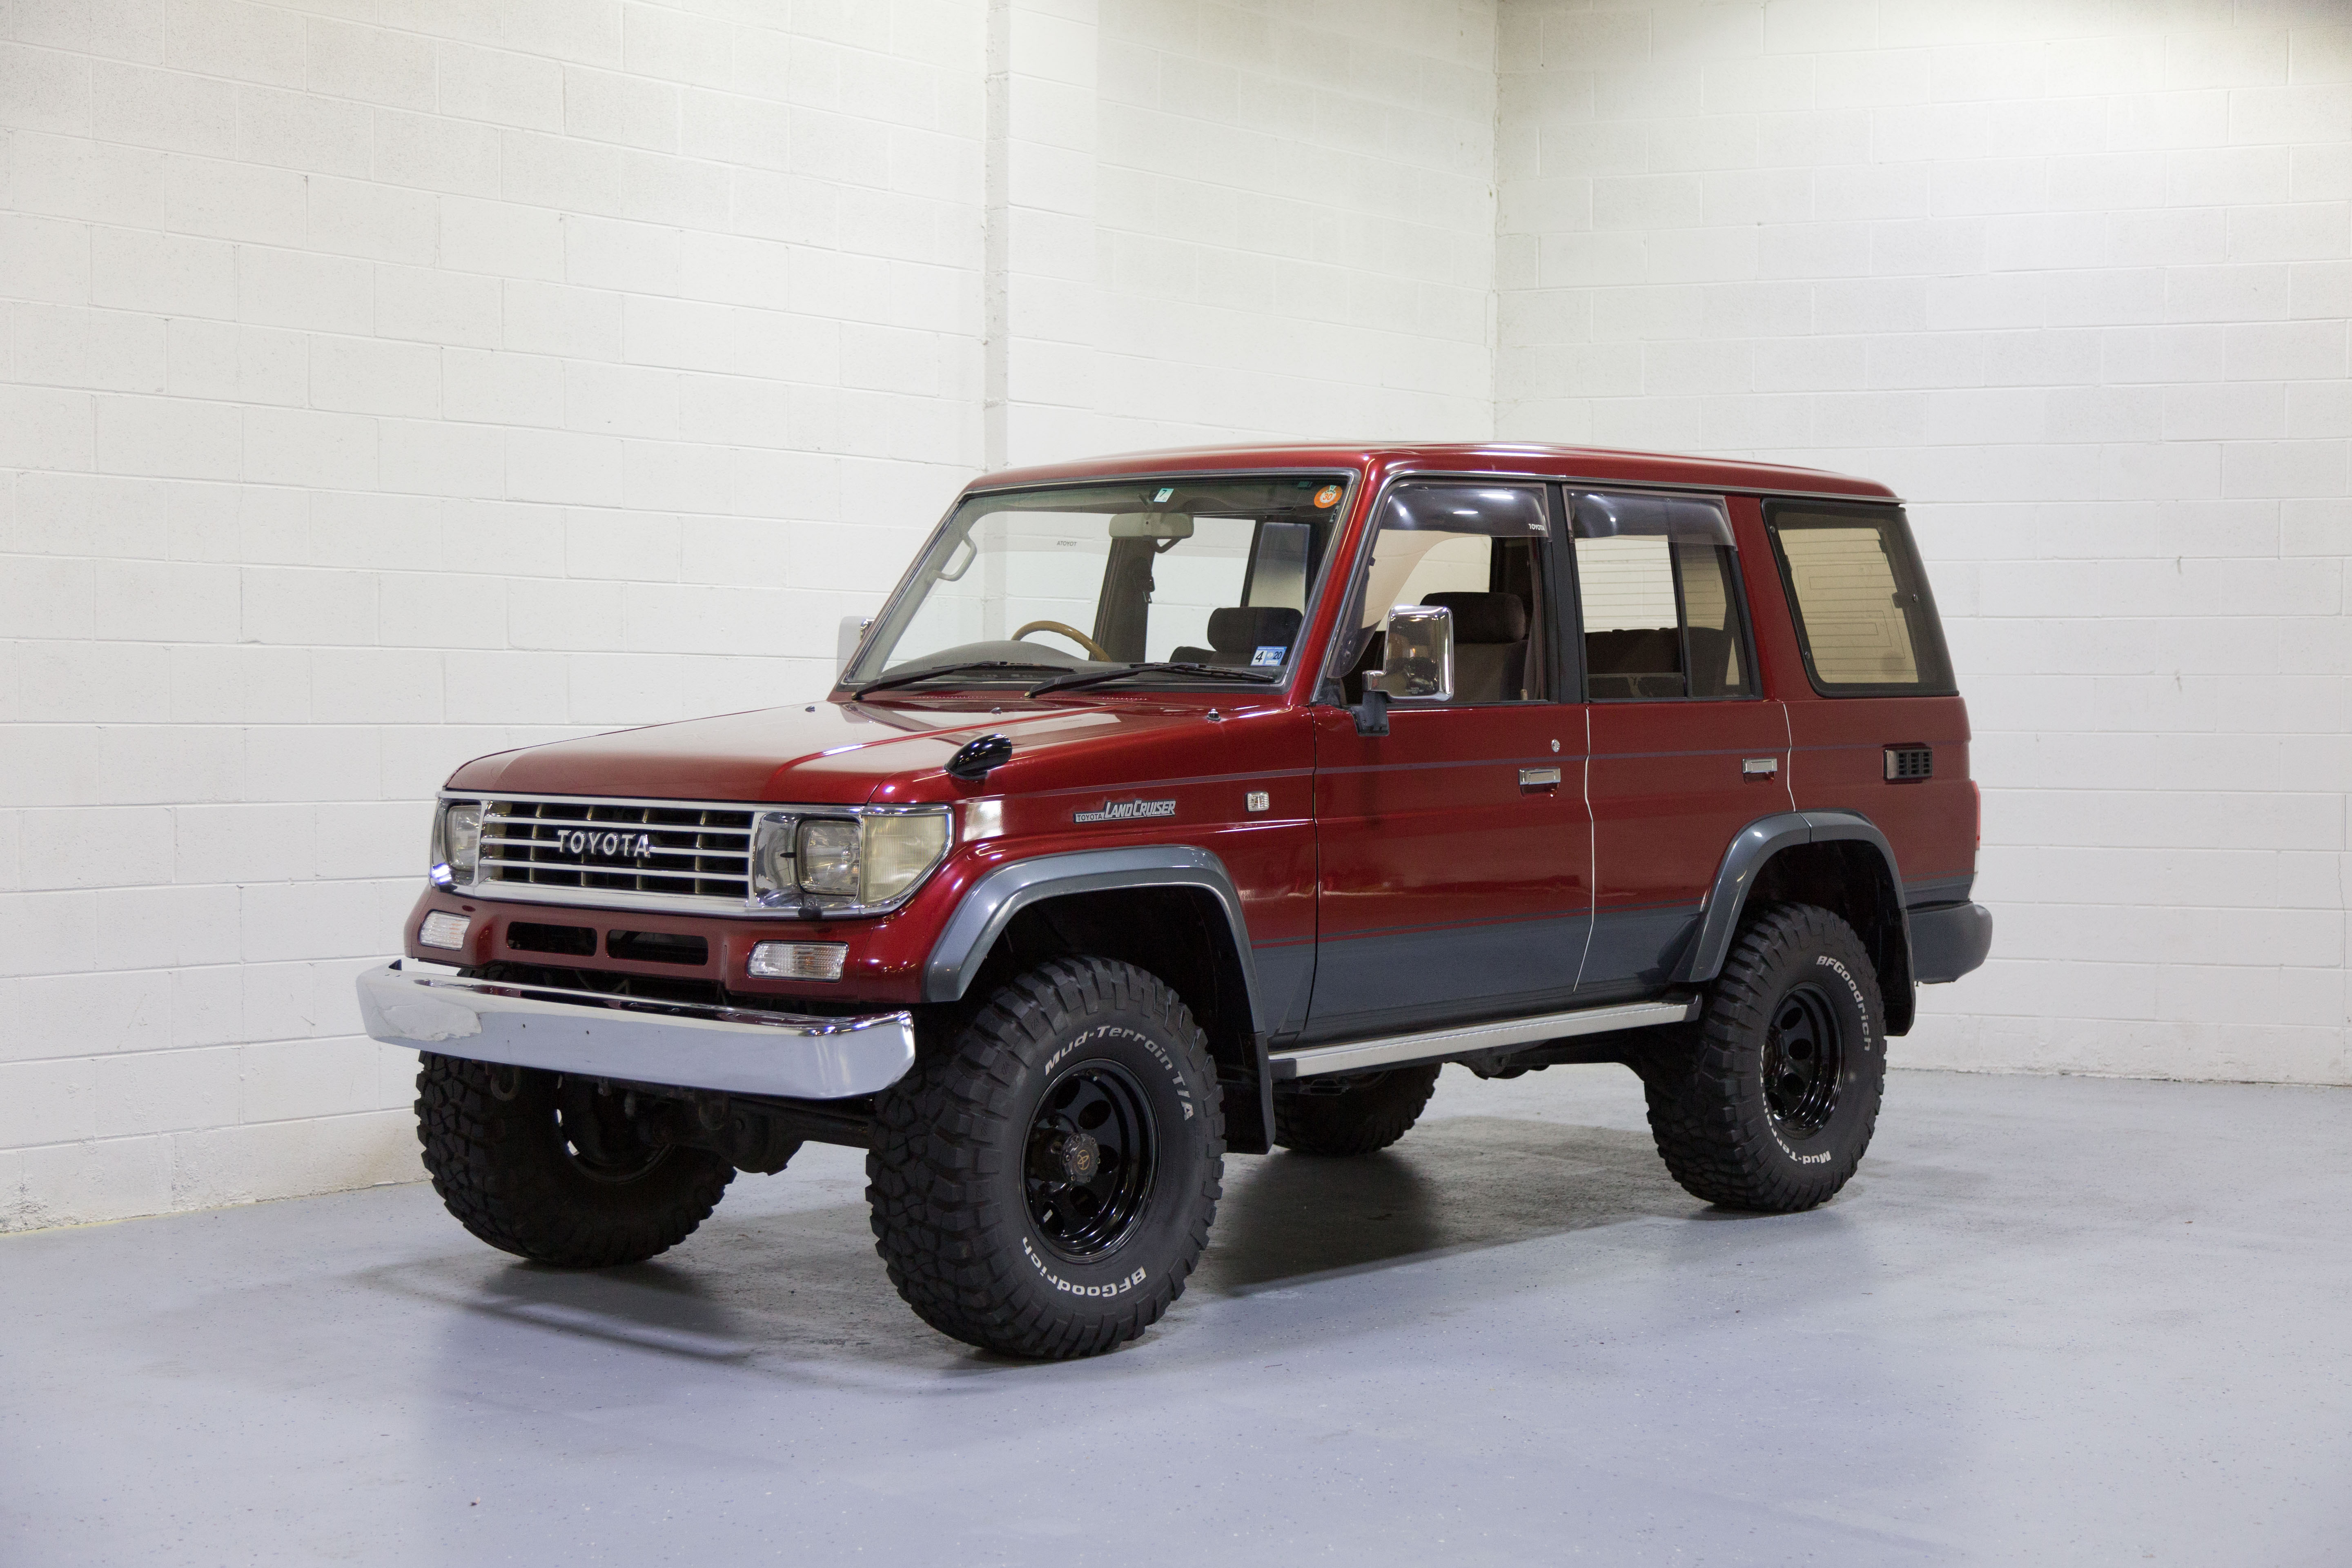 Mint Condition Low Mileage Rhd 1993 Lifted Toyota Land Cruiser Kzj78 Prado In Beautiful Deep Red For Sale In Usa Imported Rhd Cars J Spec Auto Sports